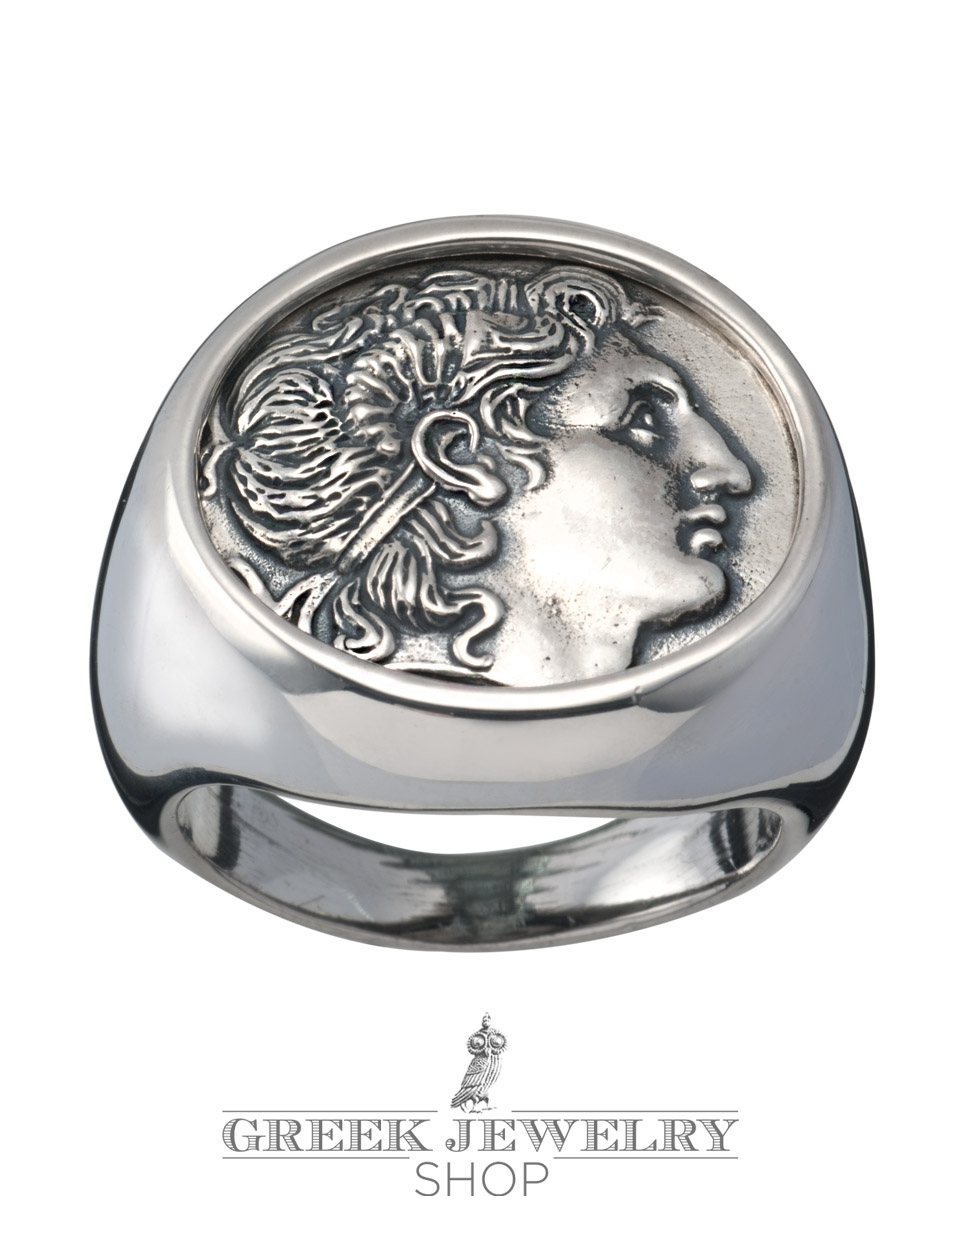 Greek jewelry shop ancient greek coin jewellery rings large impressive mens alexander the great chevalier coin ring greek jewelry shop biocorpaavc